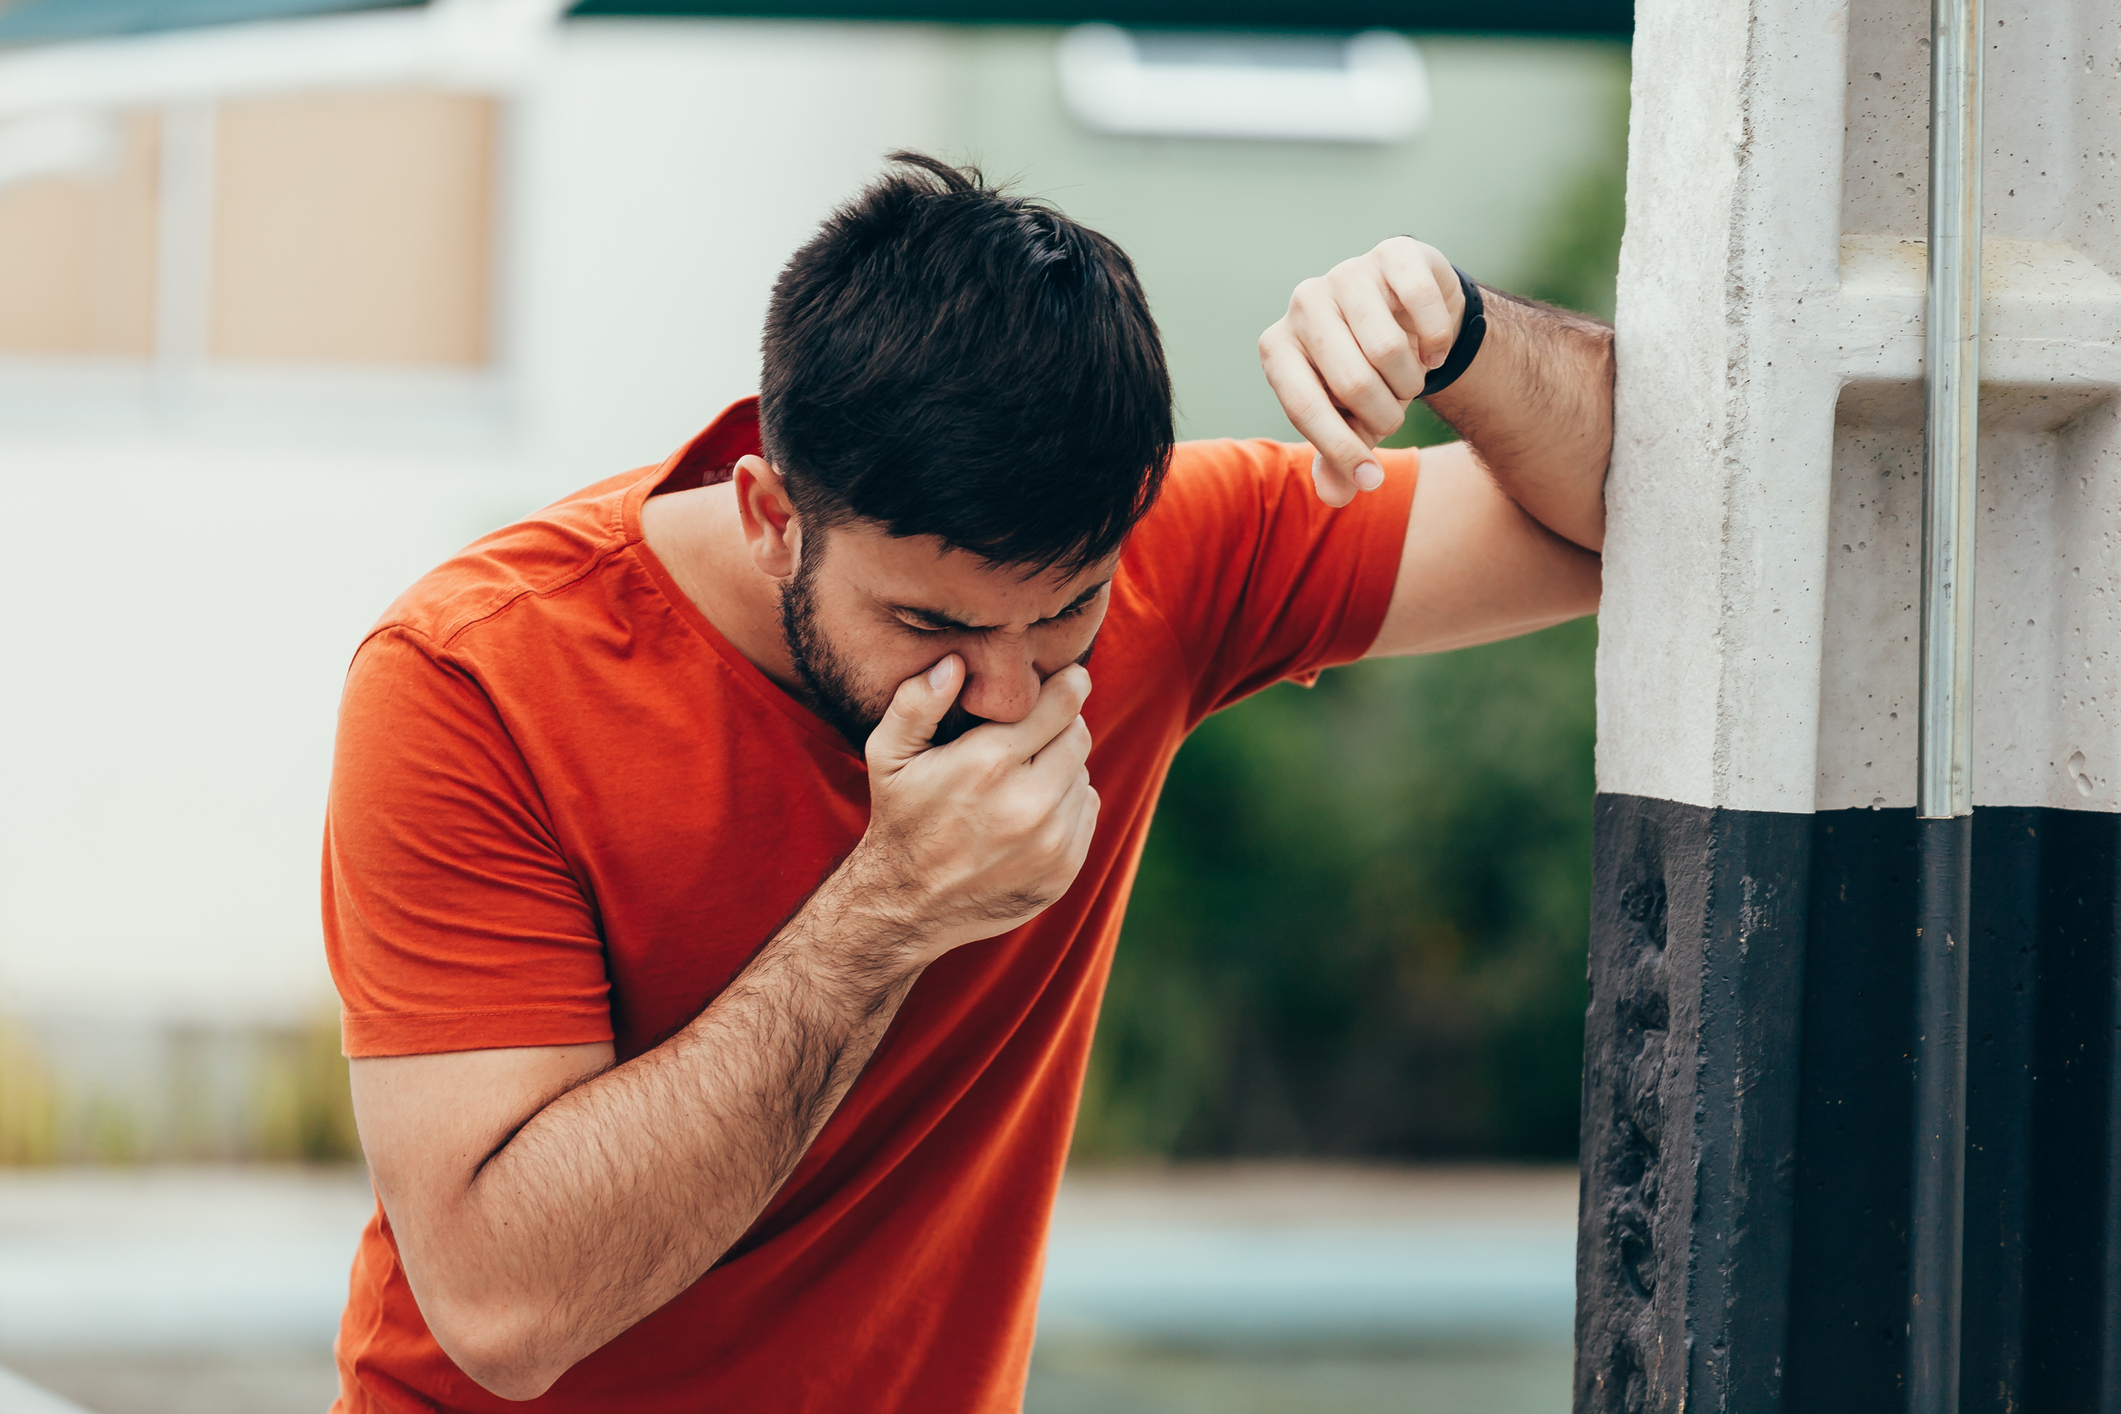 Nauseous man leaning against a wall with a hand to his mouth